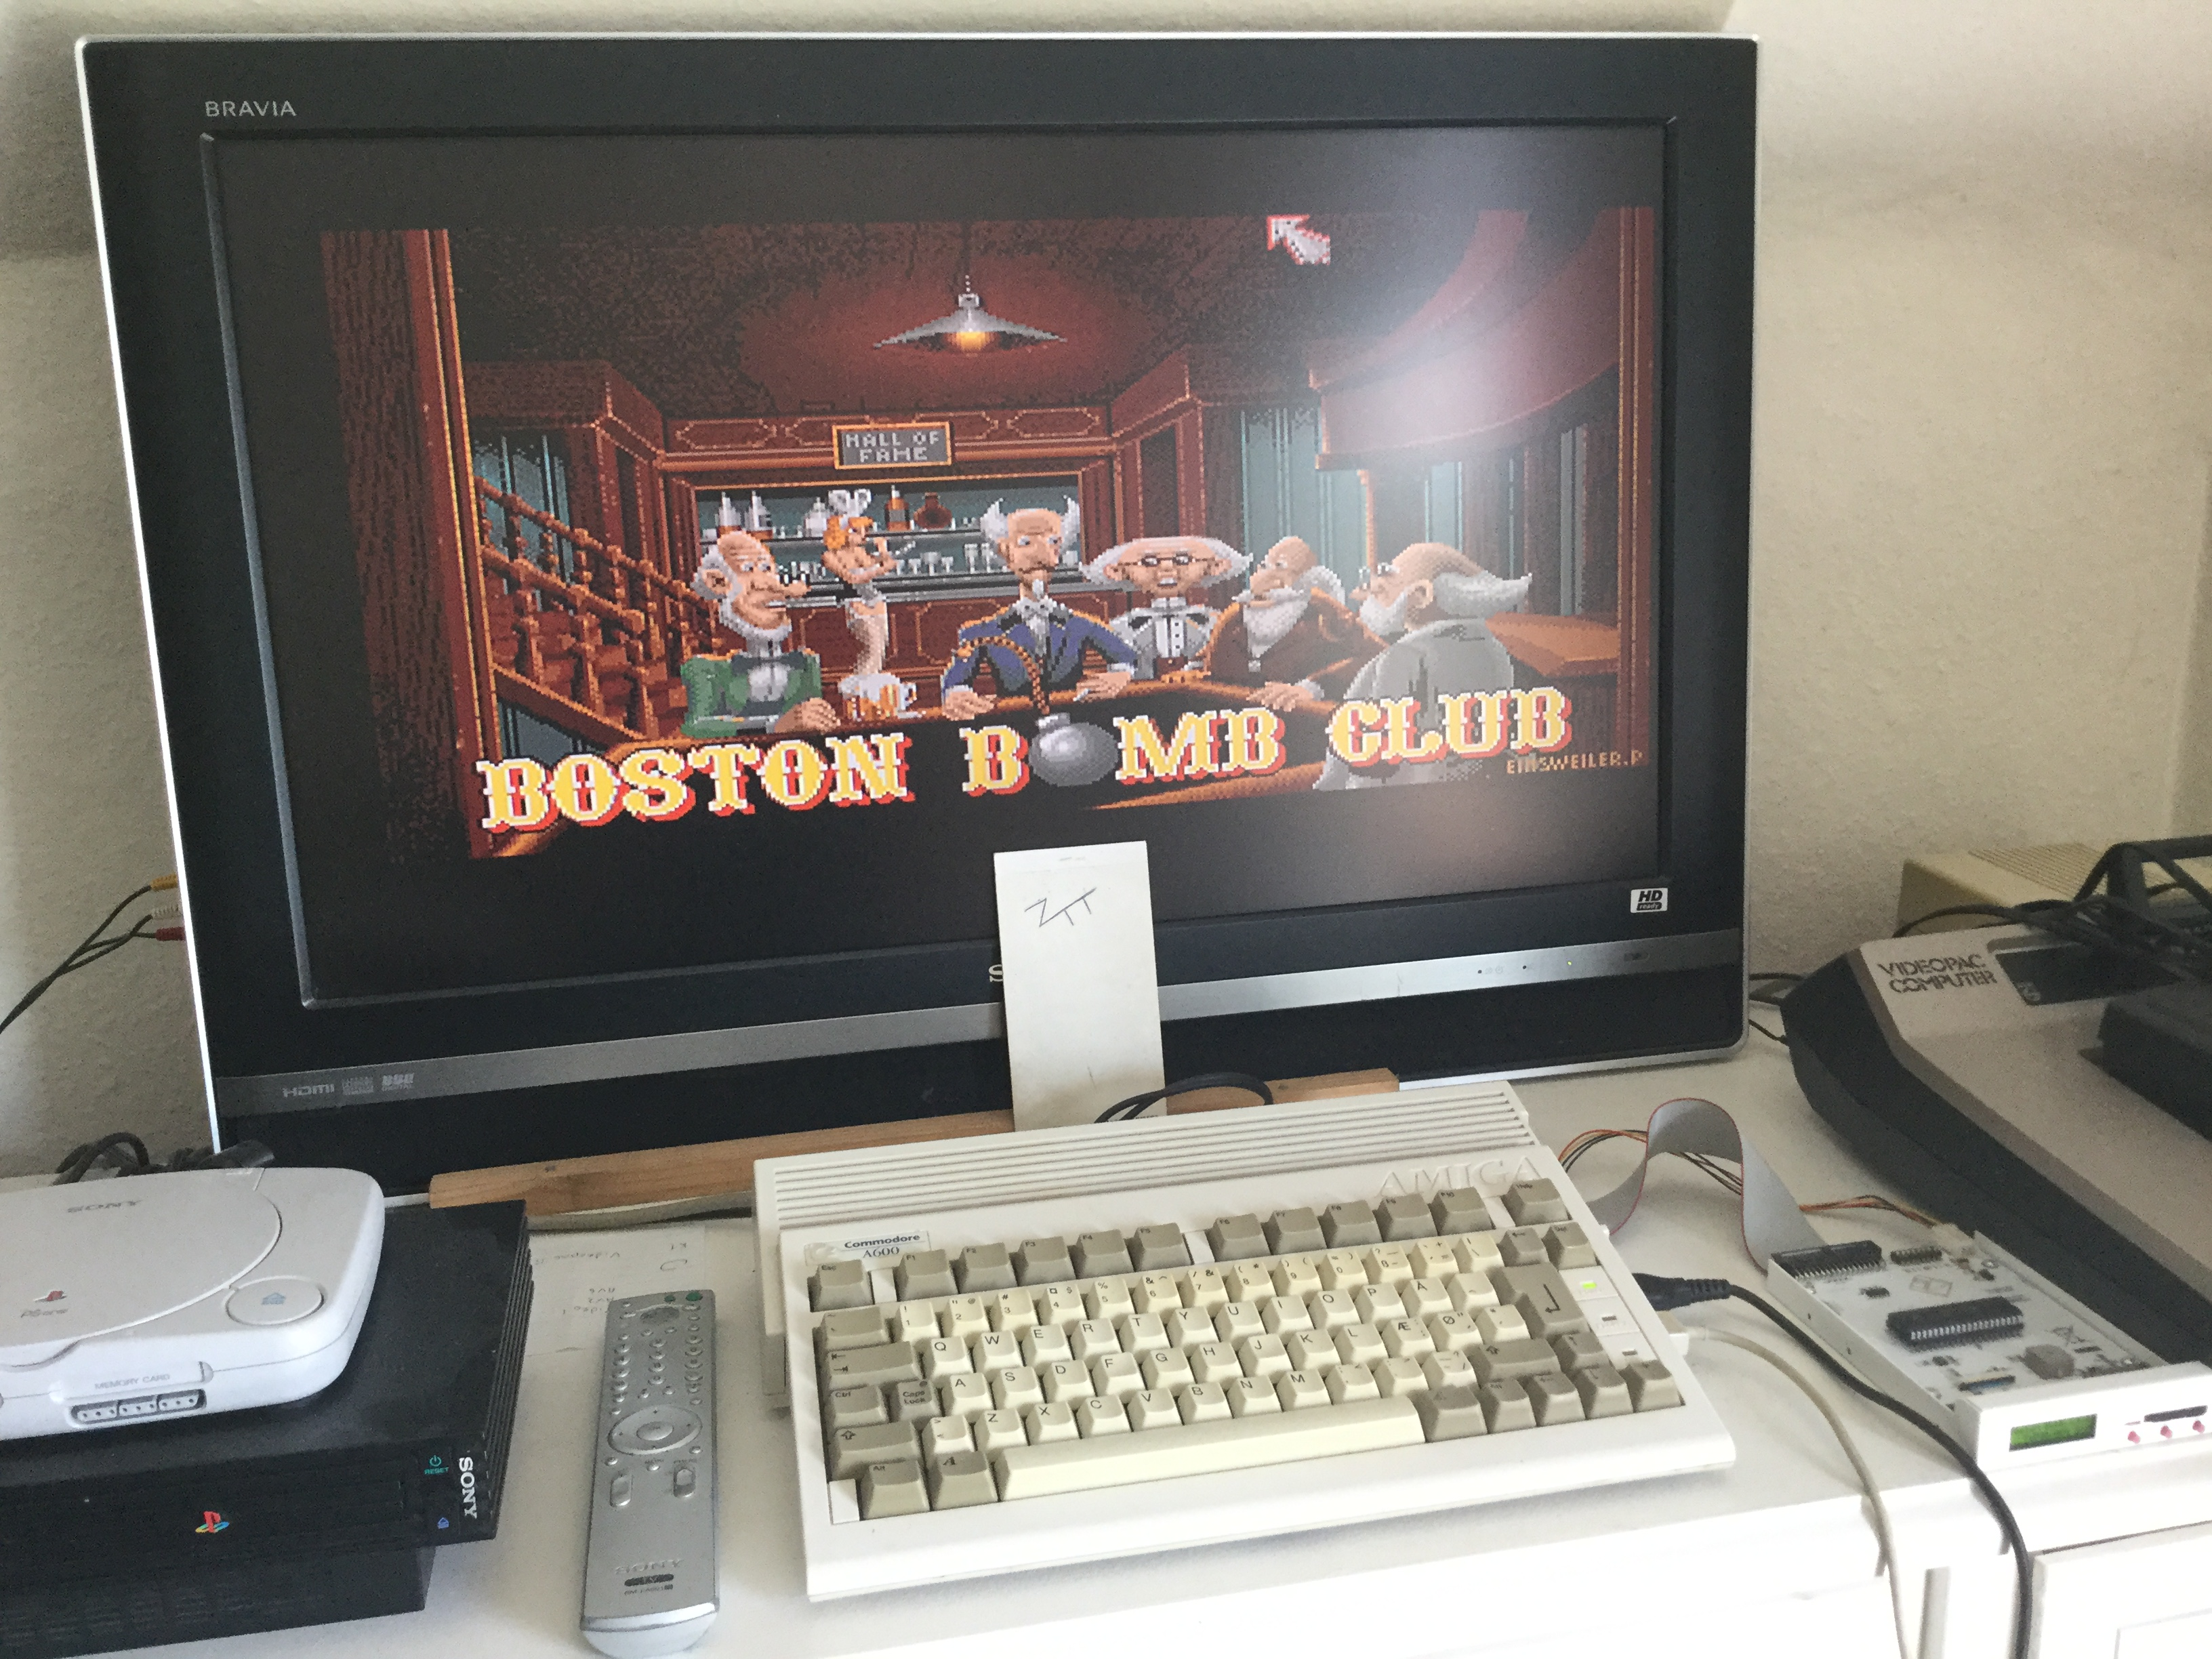 Frankie: Boston Bomb Club [Start Level: 1] (Amiga) 2,285 points on 2019-06-30 04:16:23